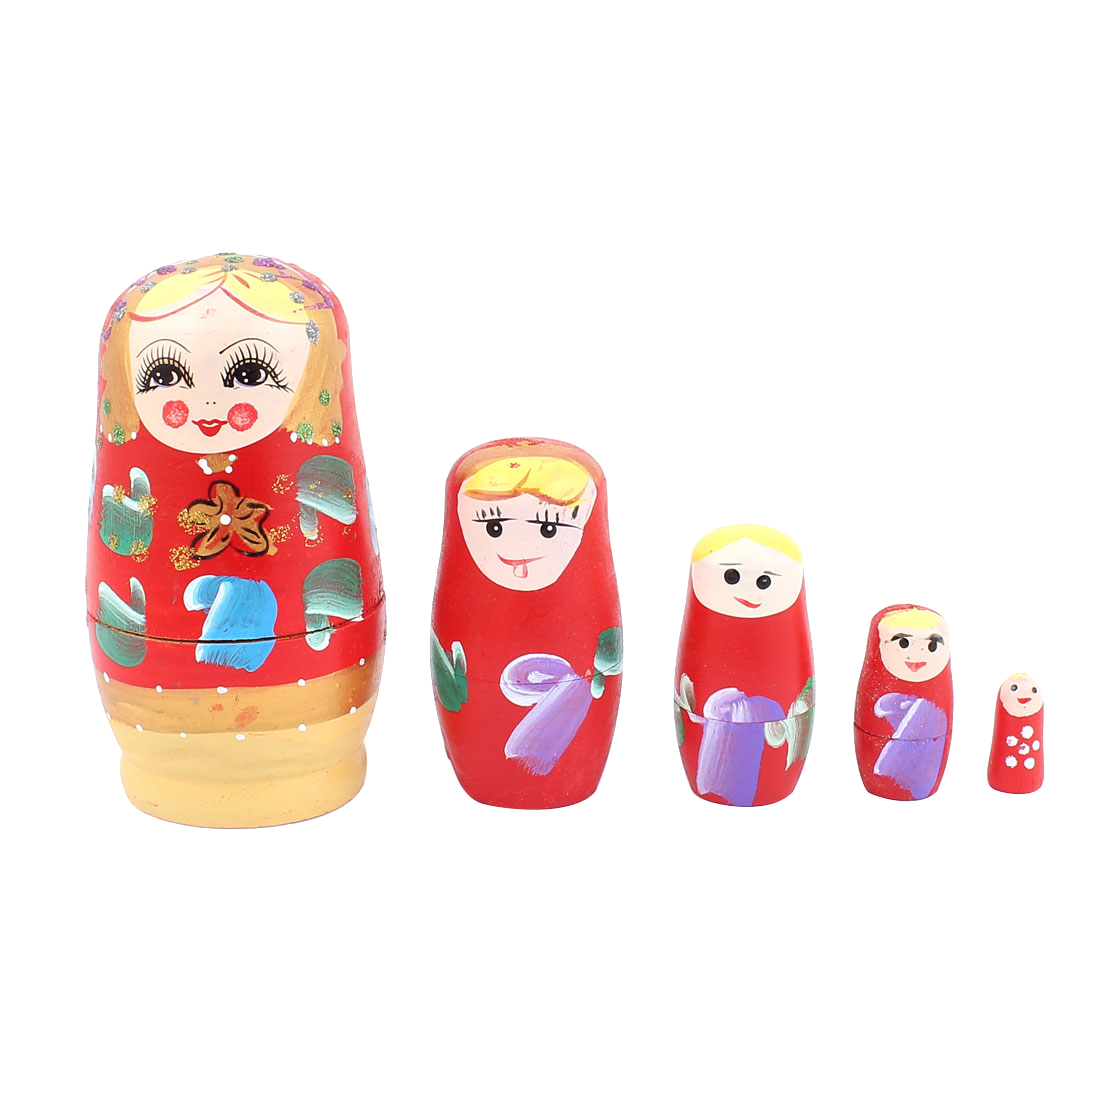 Unique Bargains Russian Babushka Flowers Painted Nesting Matryoshka Doll Red 5 in 1